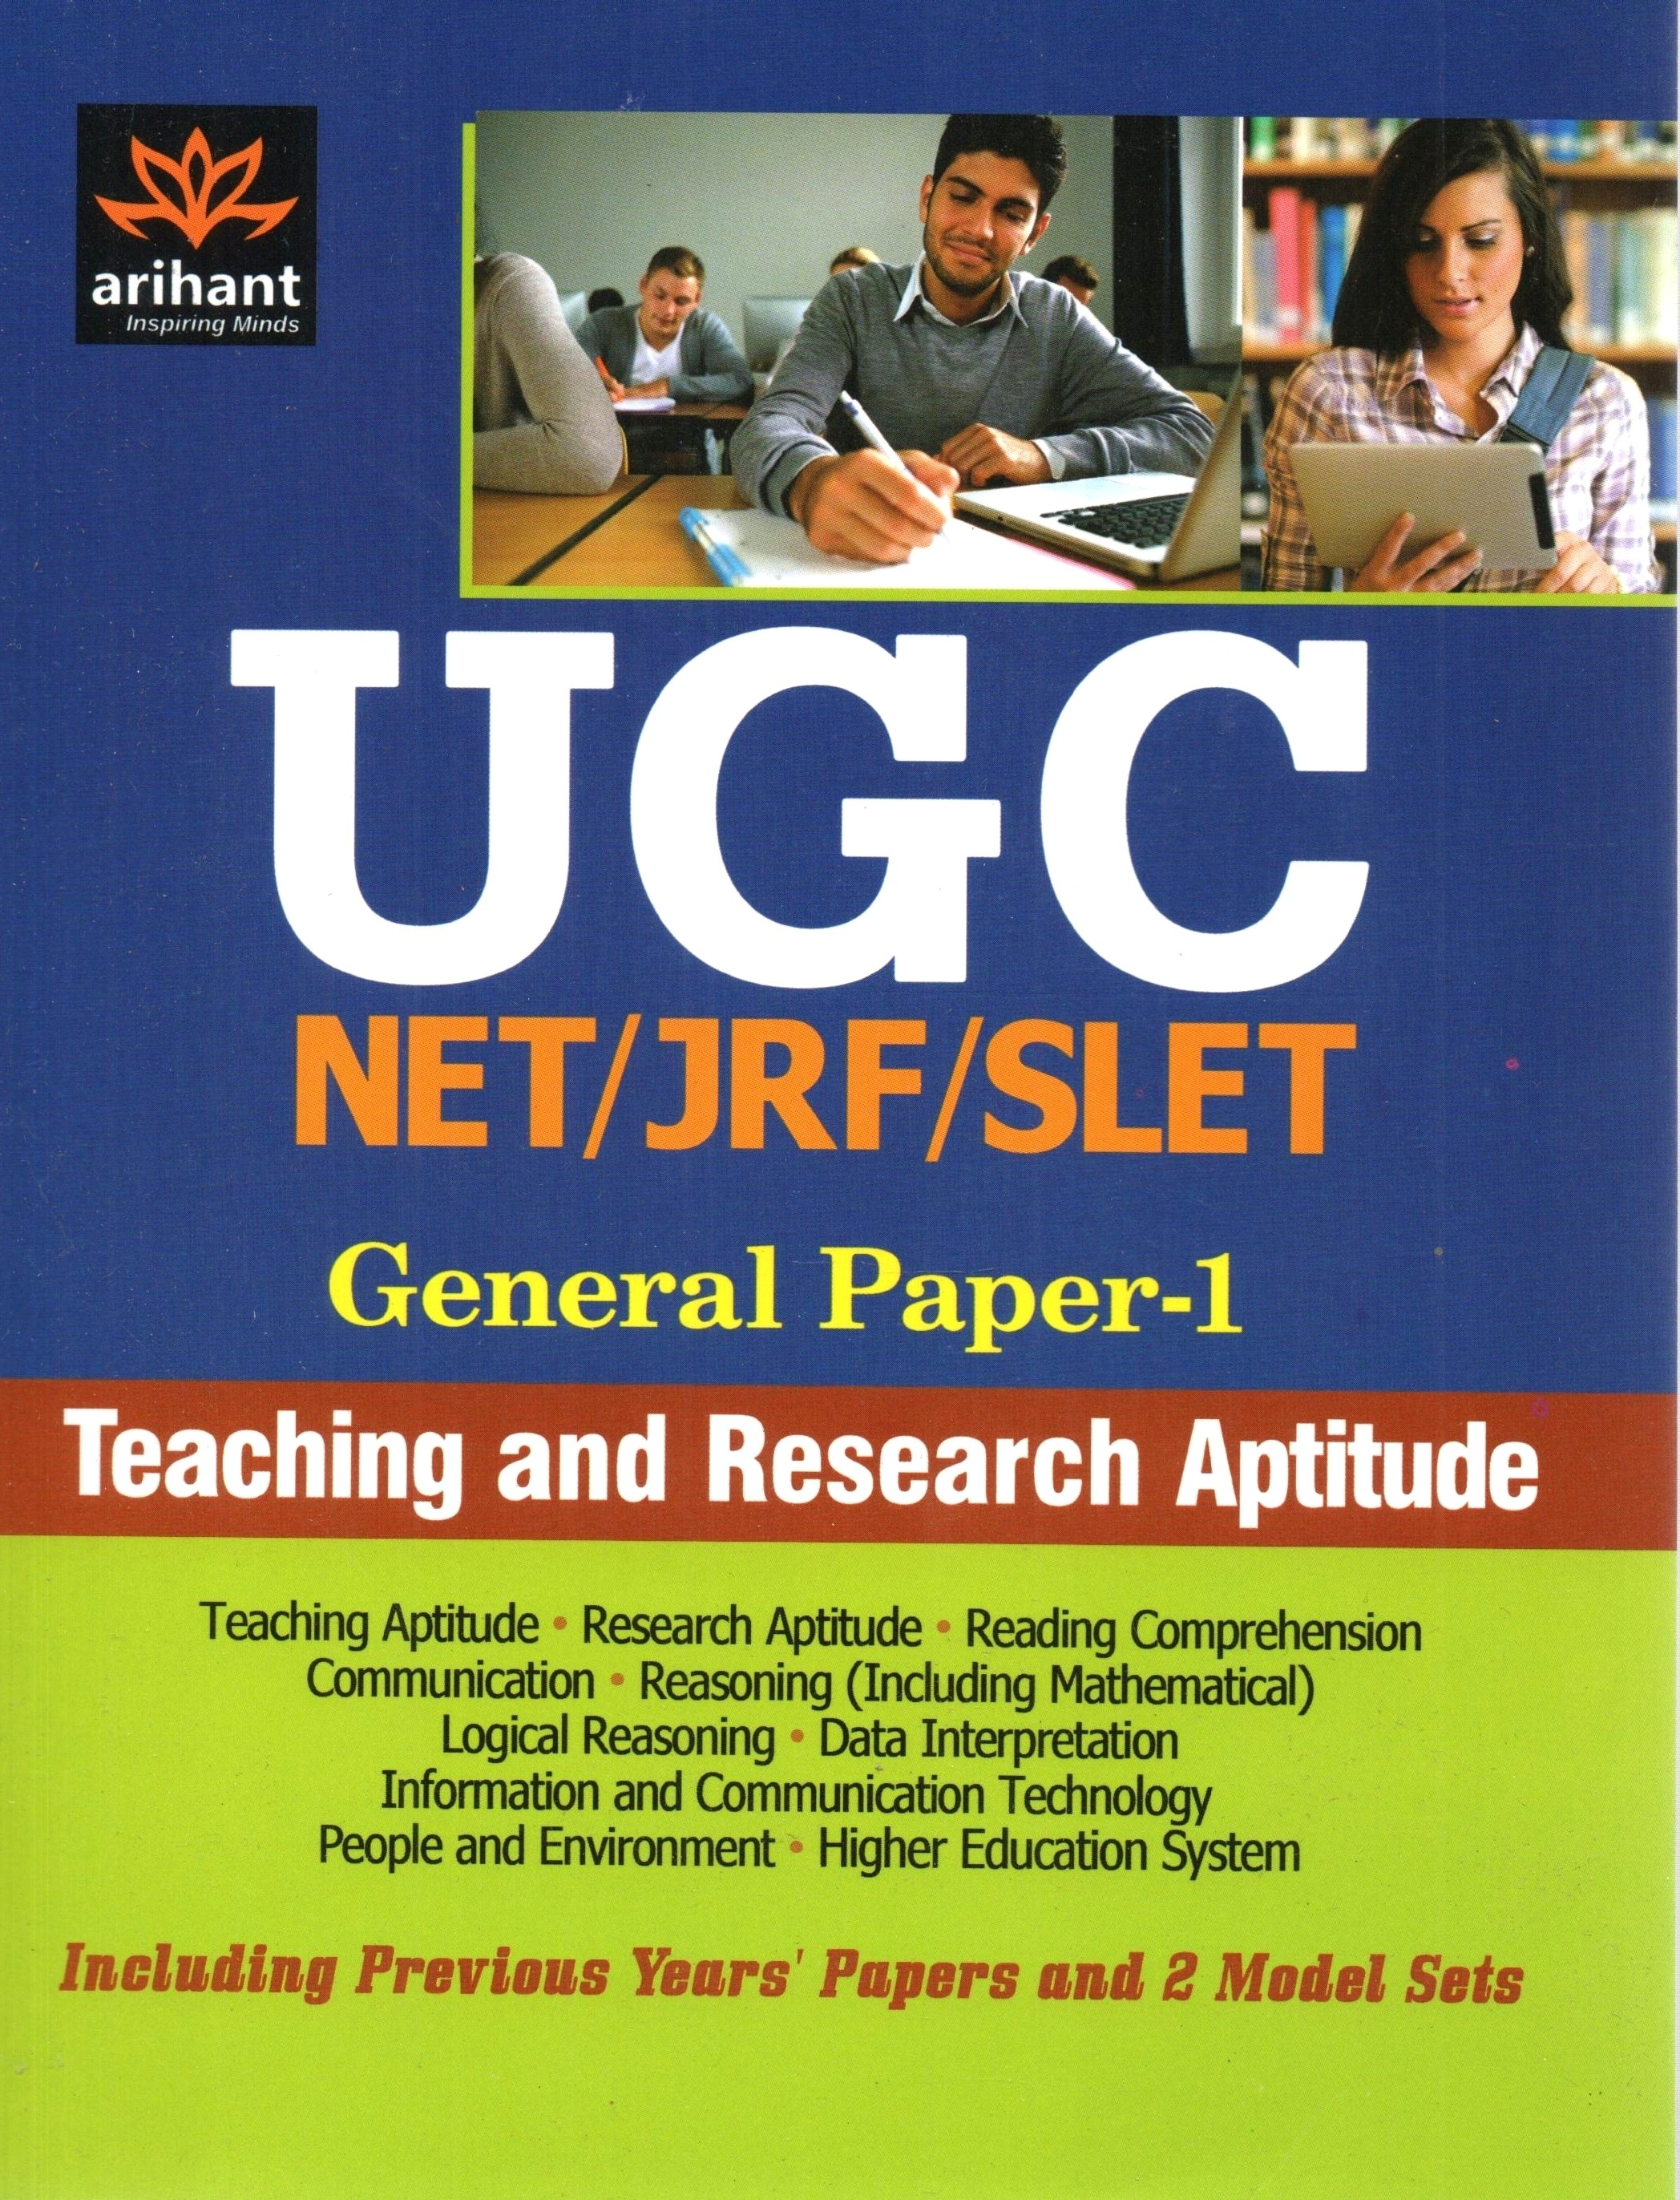 general research paper Research paper topics (top 100 best research topics) - duration: 2:55 how to write research paper: creative writing lessons & tips: writebynight - duration: 10:04.